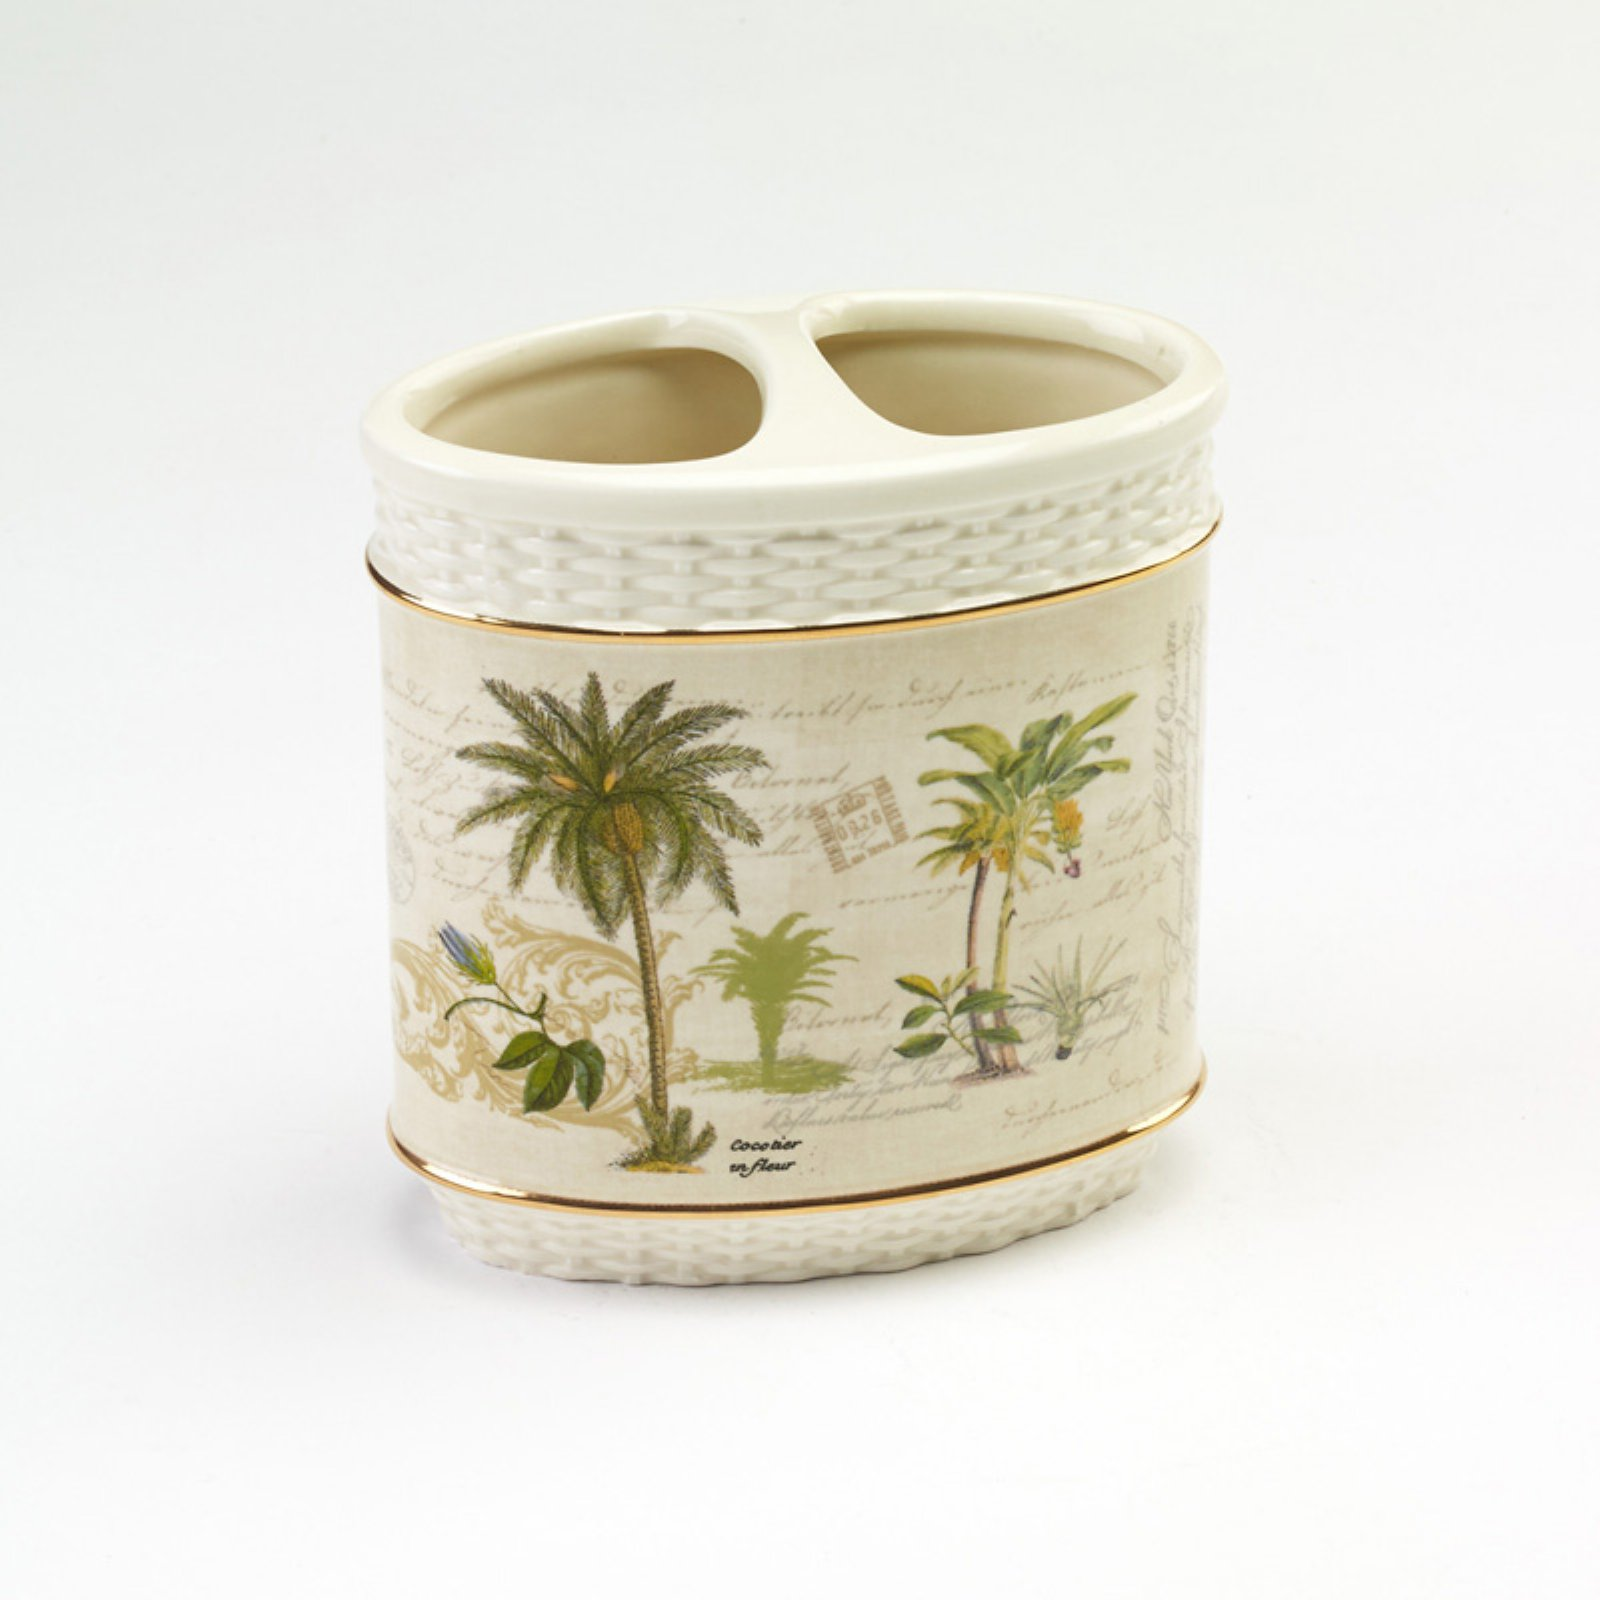 Avanti Linens Colony Palm Toothbrush Holder